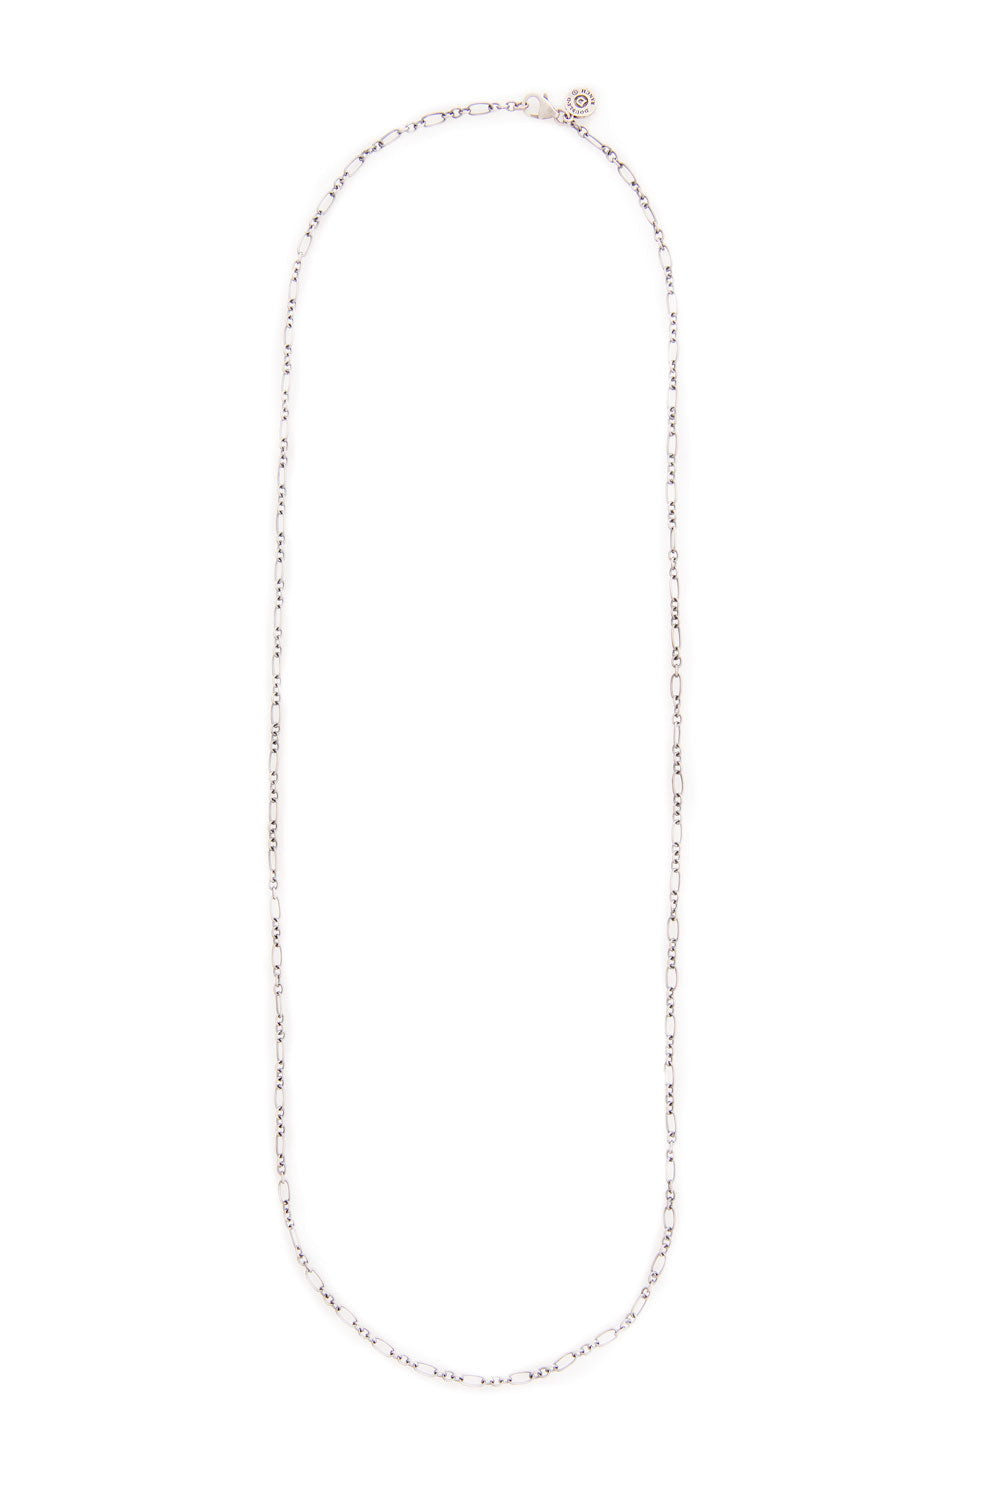 Necklace, Chain 36""